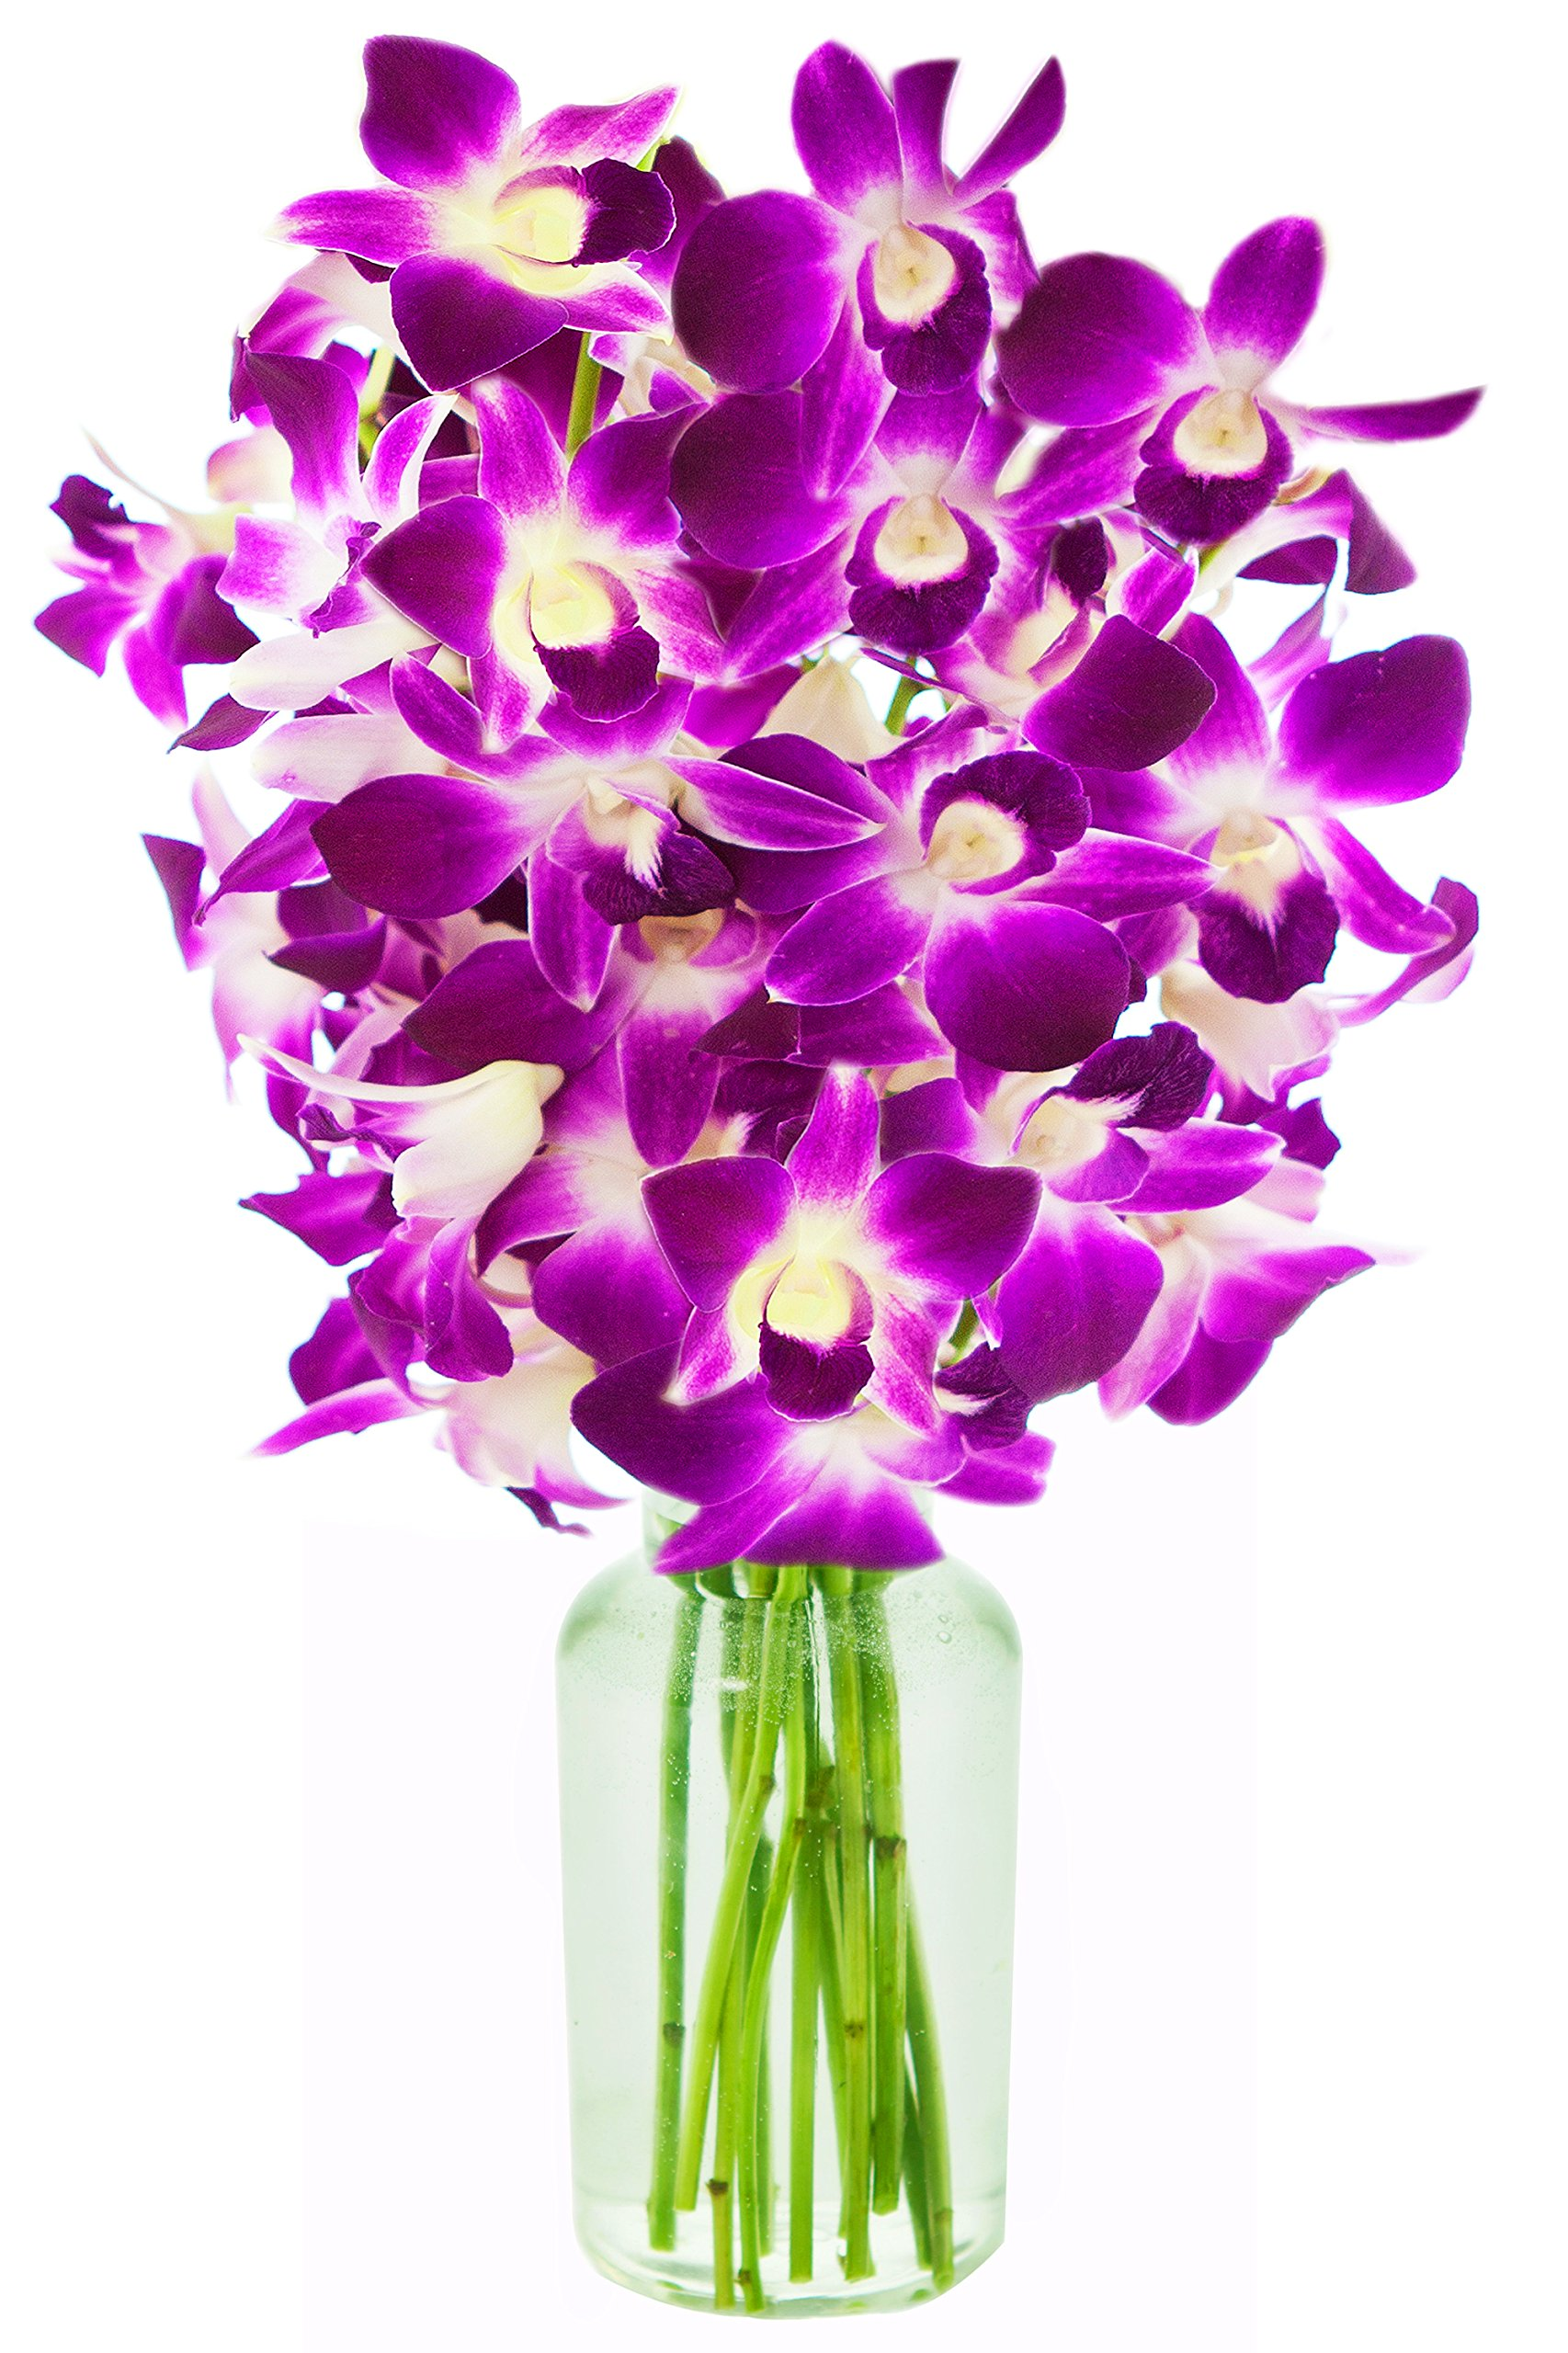 KaBloom Bouquet of Purple Orchids from Thailand with Vase